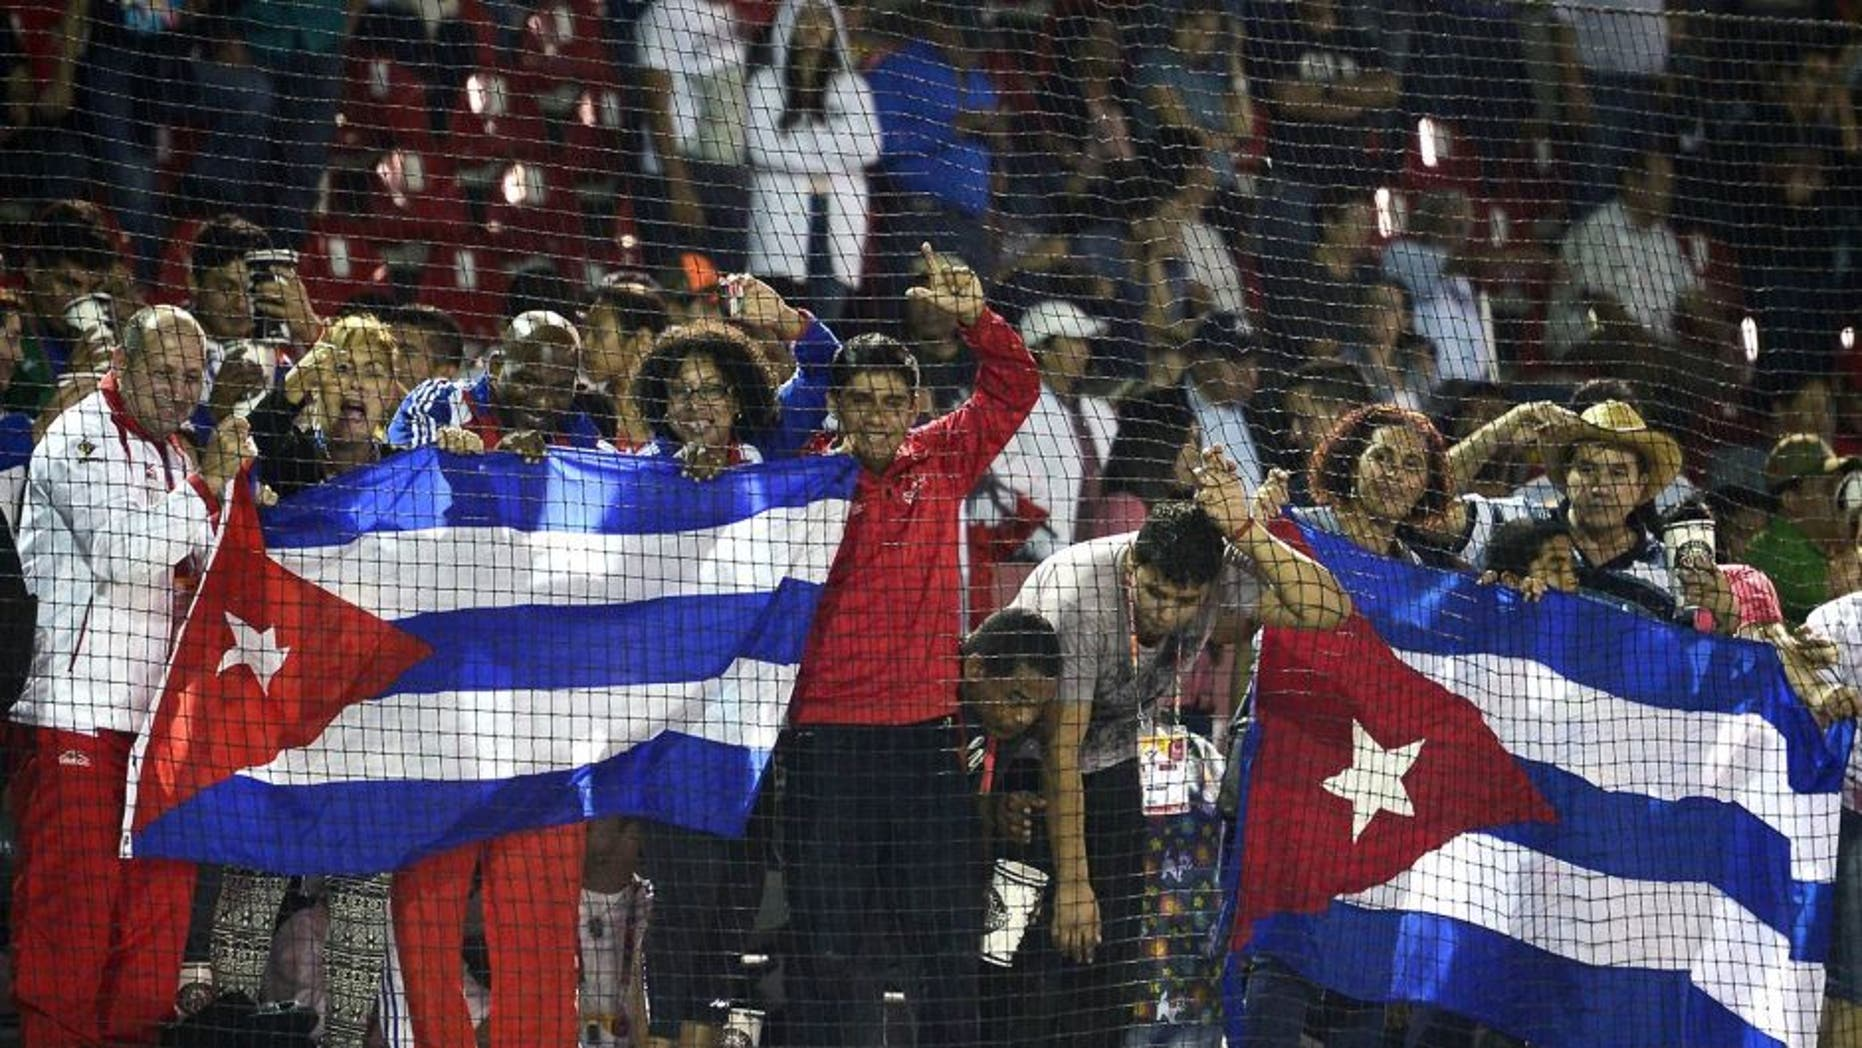 Cuban fans celebrate after winning the Gold medal against Nicaragua during the final match of Baseball, at the XXII Central American and Caribbean Games, in Veracruz, Mexico, on November 21, 2014. The Games bring together nearly 8,000 athletes from 31 countries and run through November 30. AFP PHOTO/RONALDO SCHEMIDT (Photo credit should read RONALDO SCHEMIDT/AFP/Getty Images)